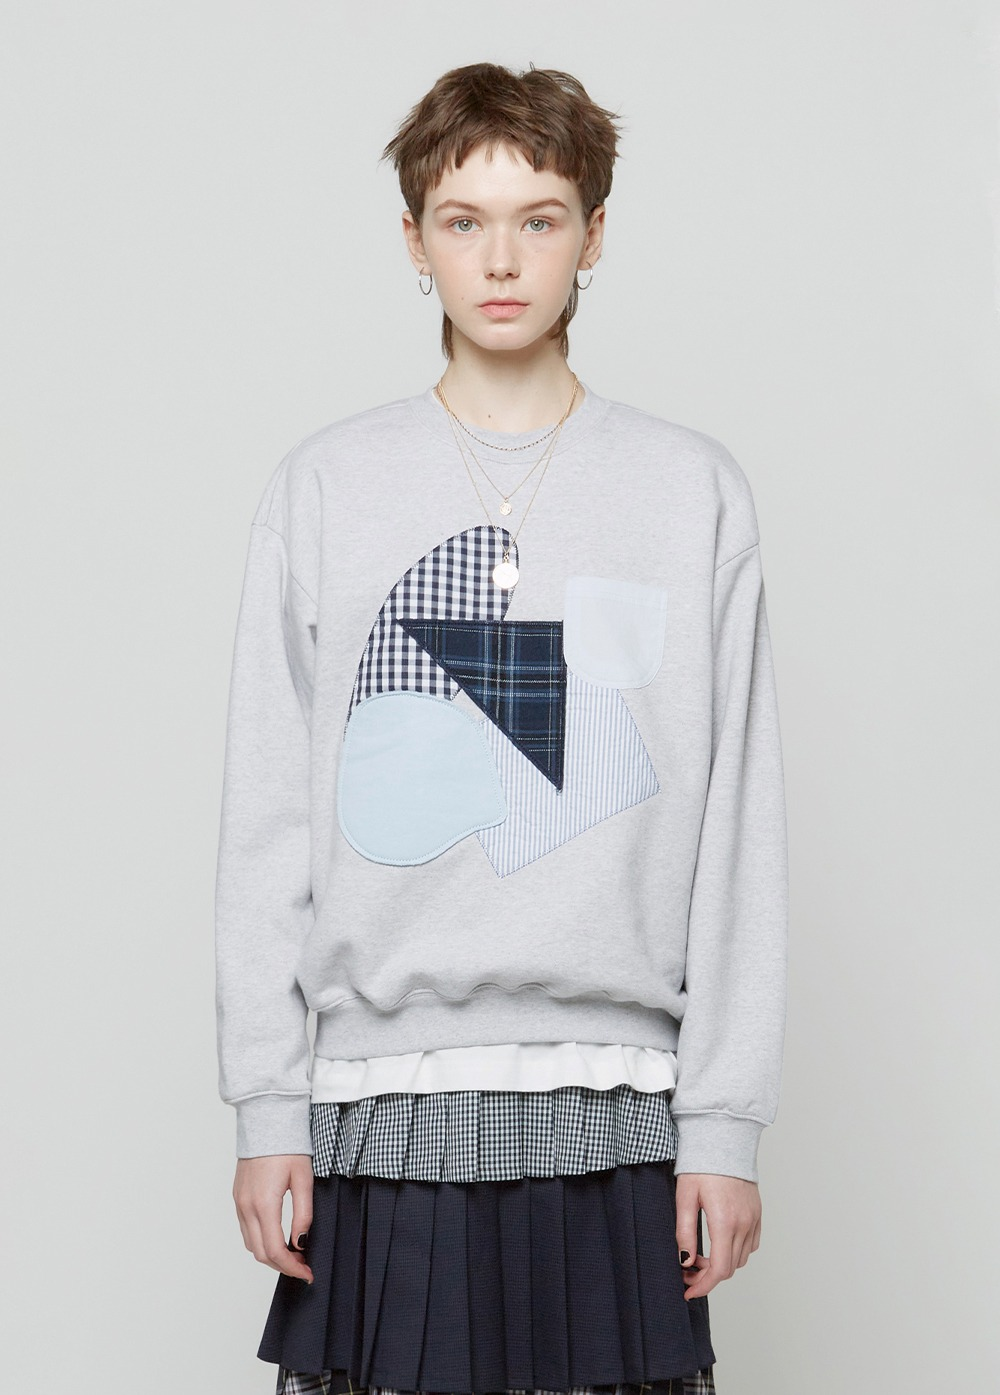 KANCO FABRIC APPLIQUE SWEATSHIRT melange gray